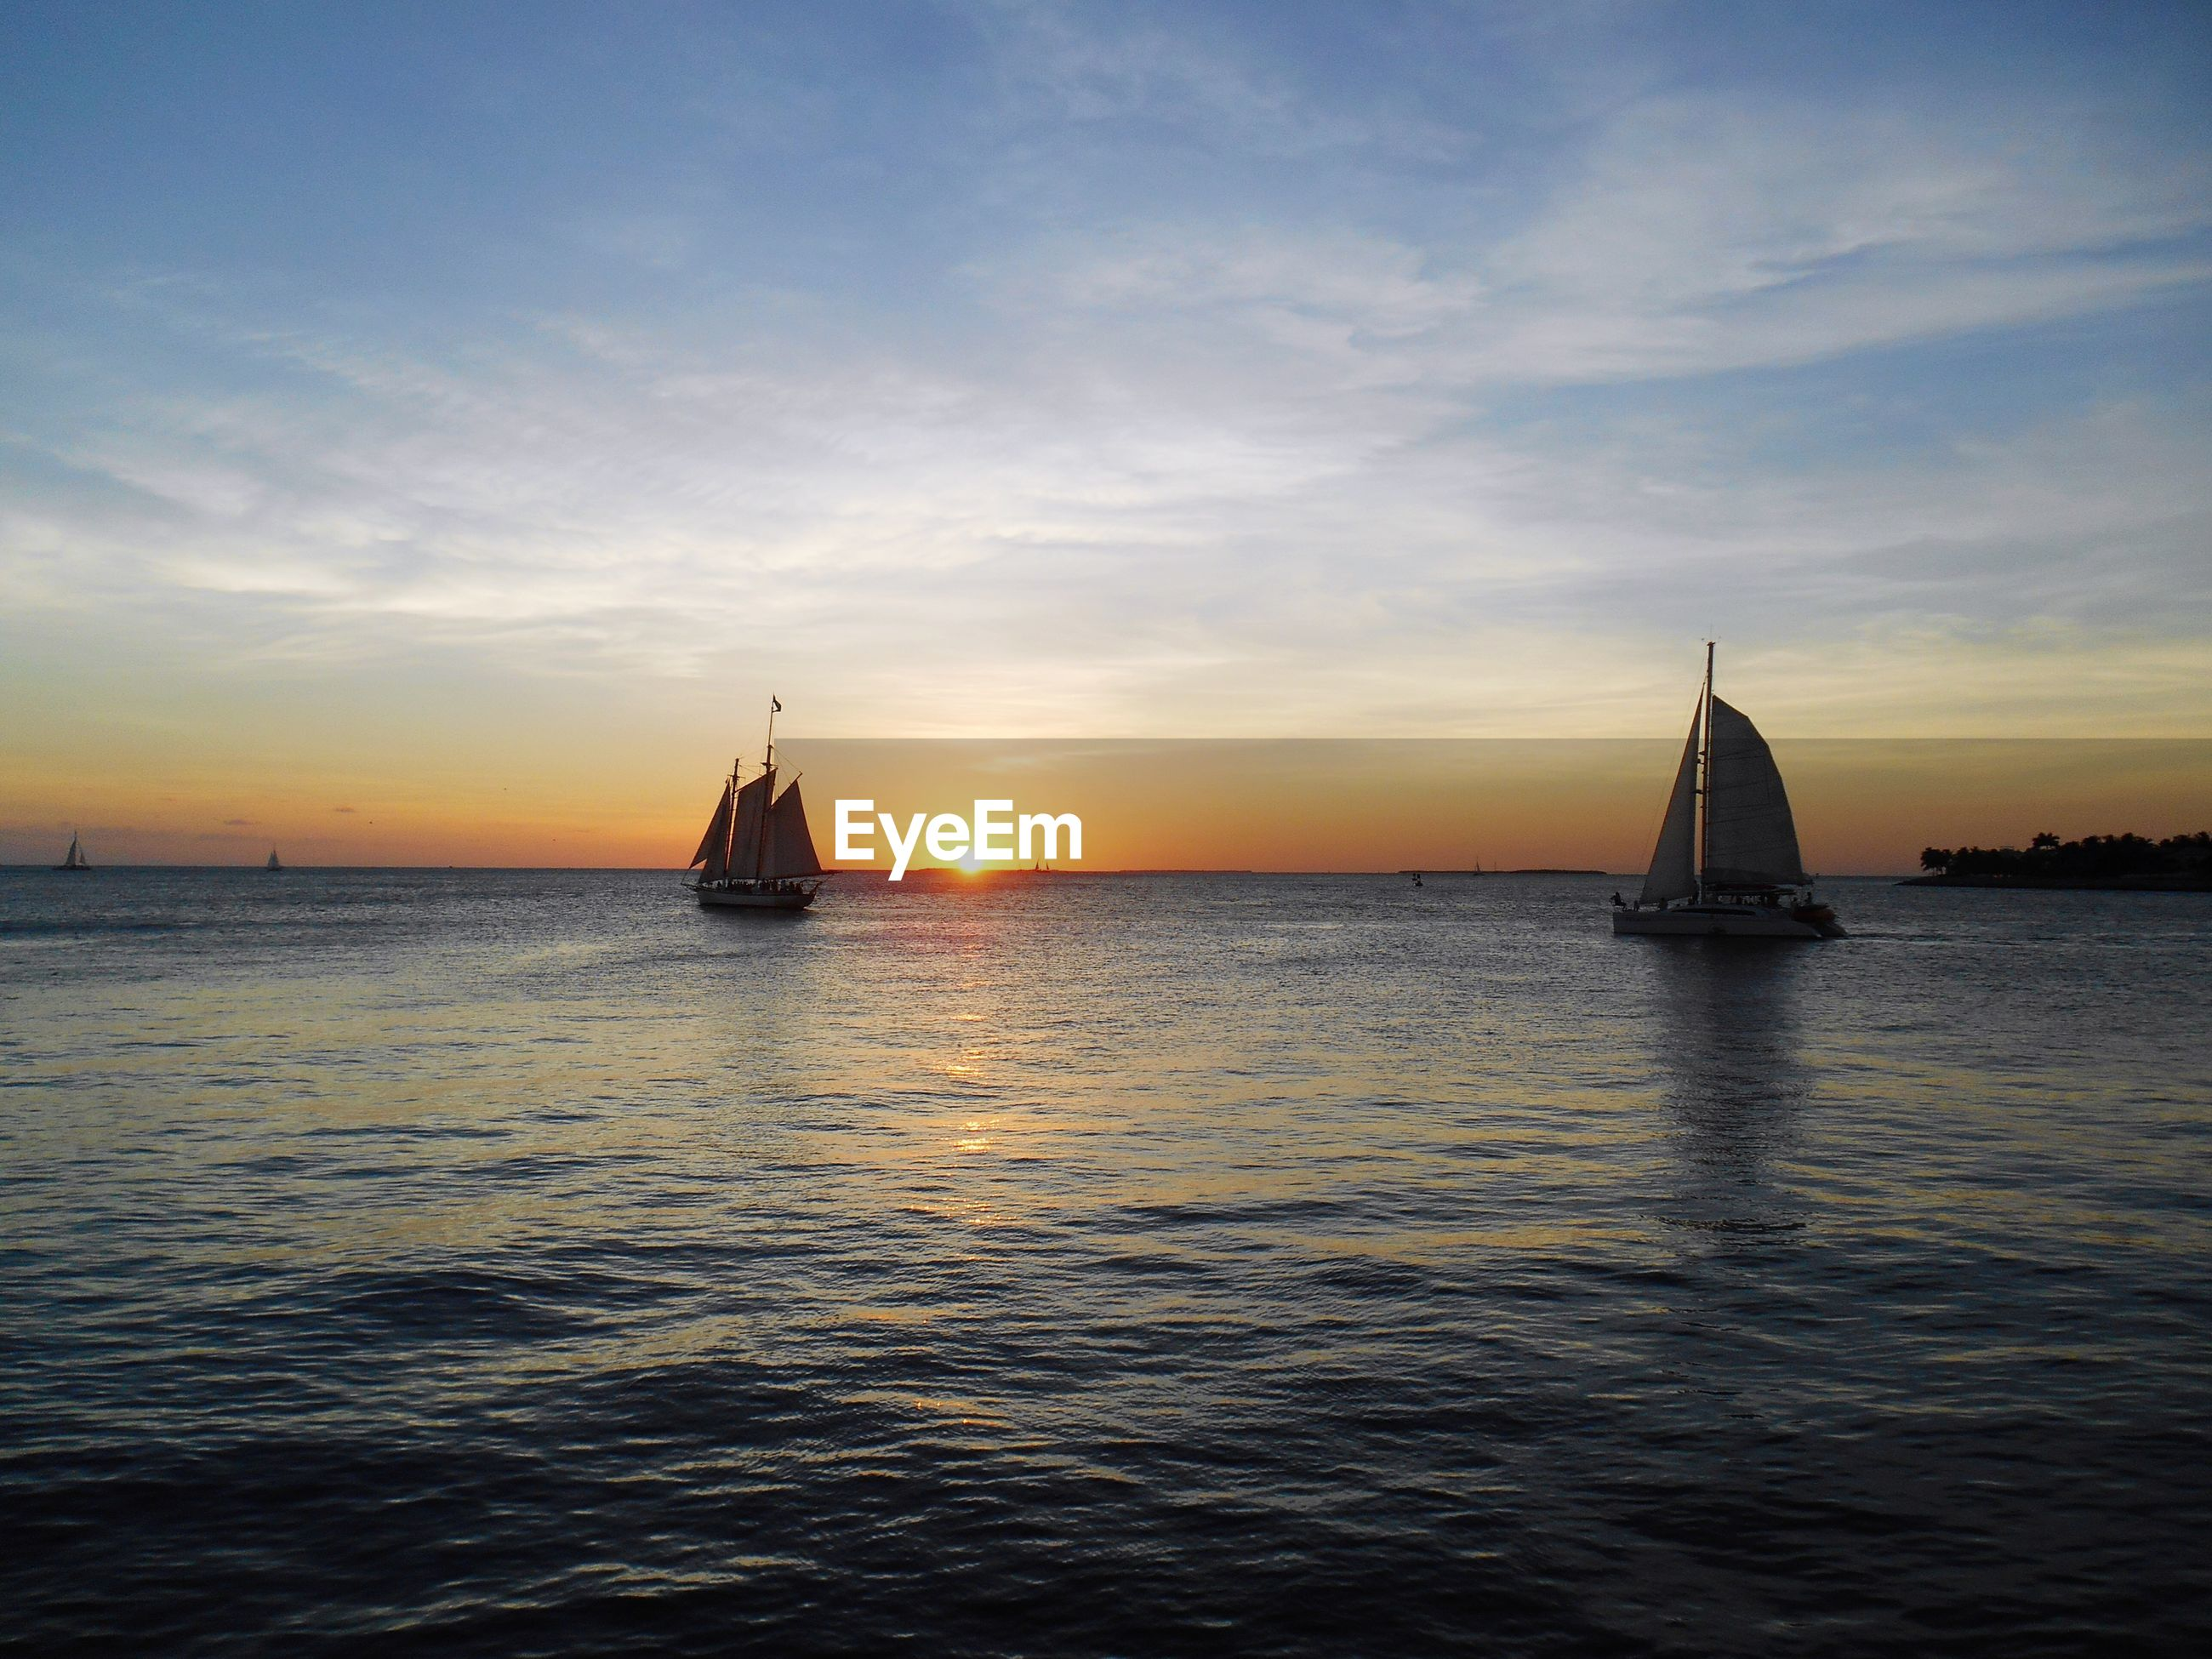 SAILBOATS SAILING ON SEA AGAINST SKY DURING SUNSET